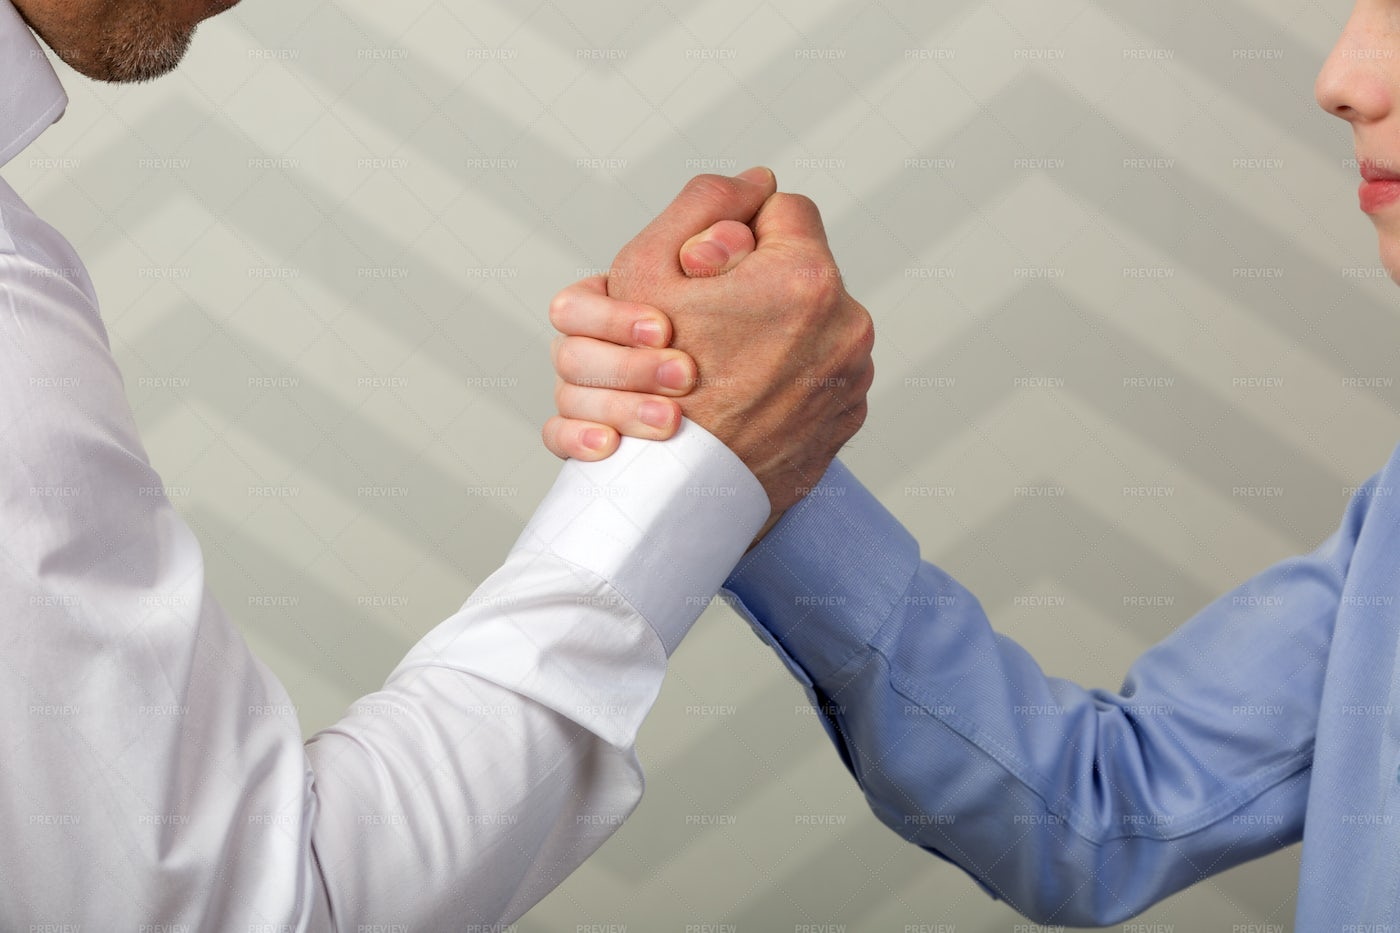 Father And Son Handshake: Stock Photos